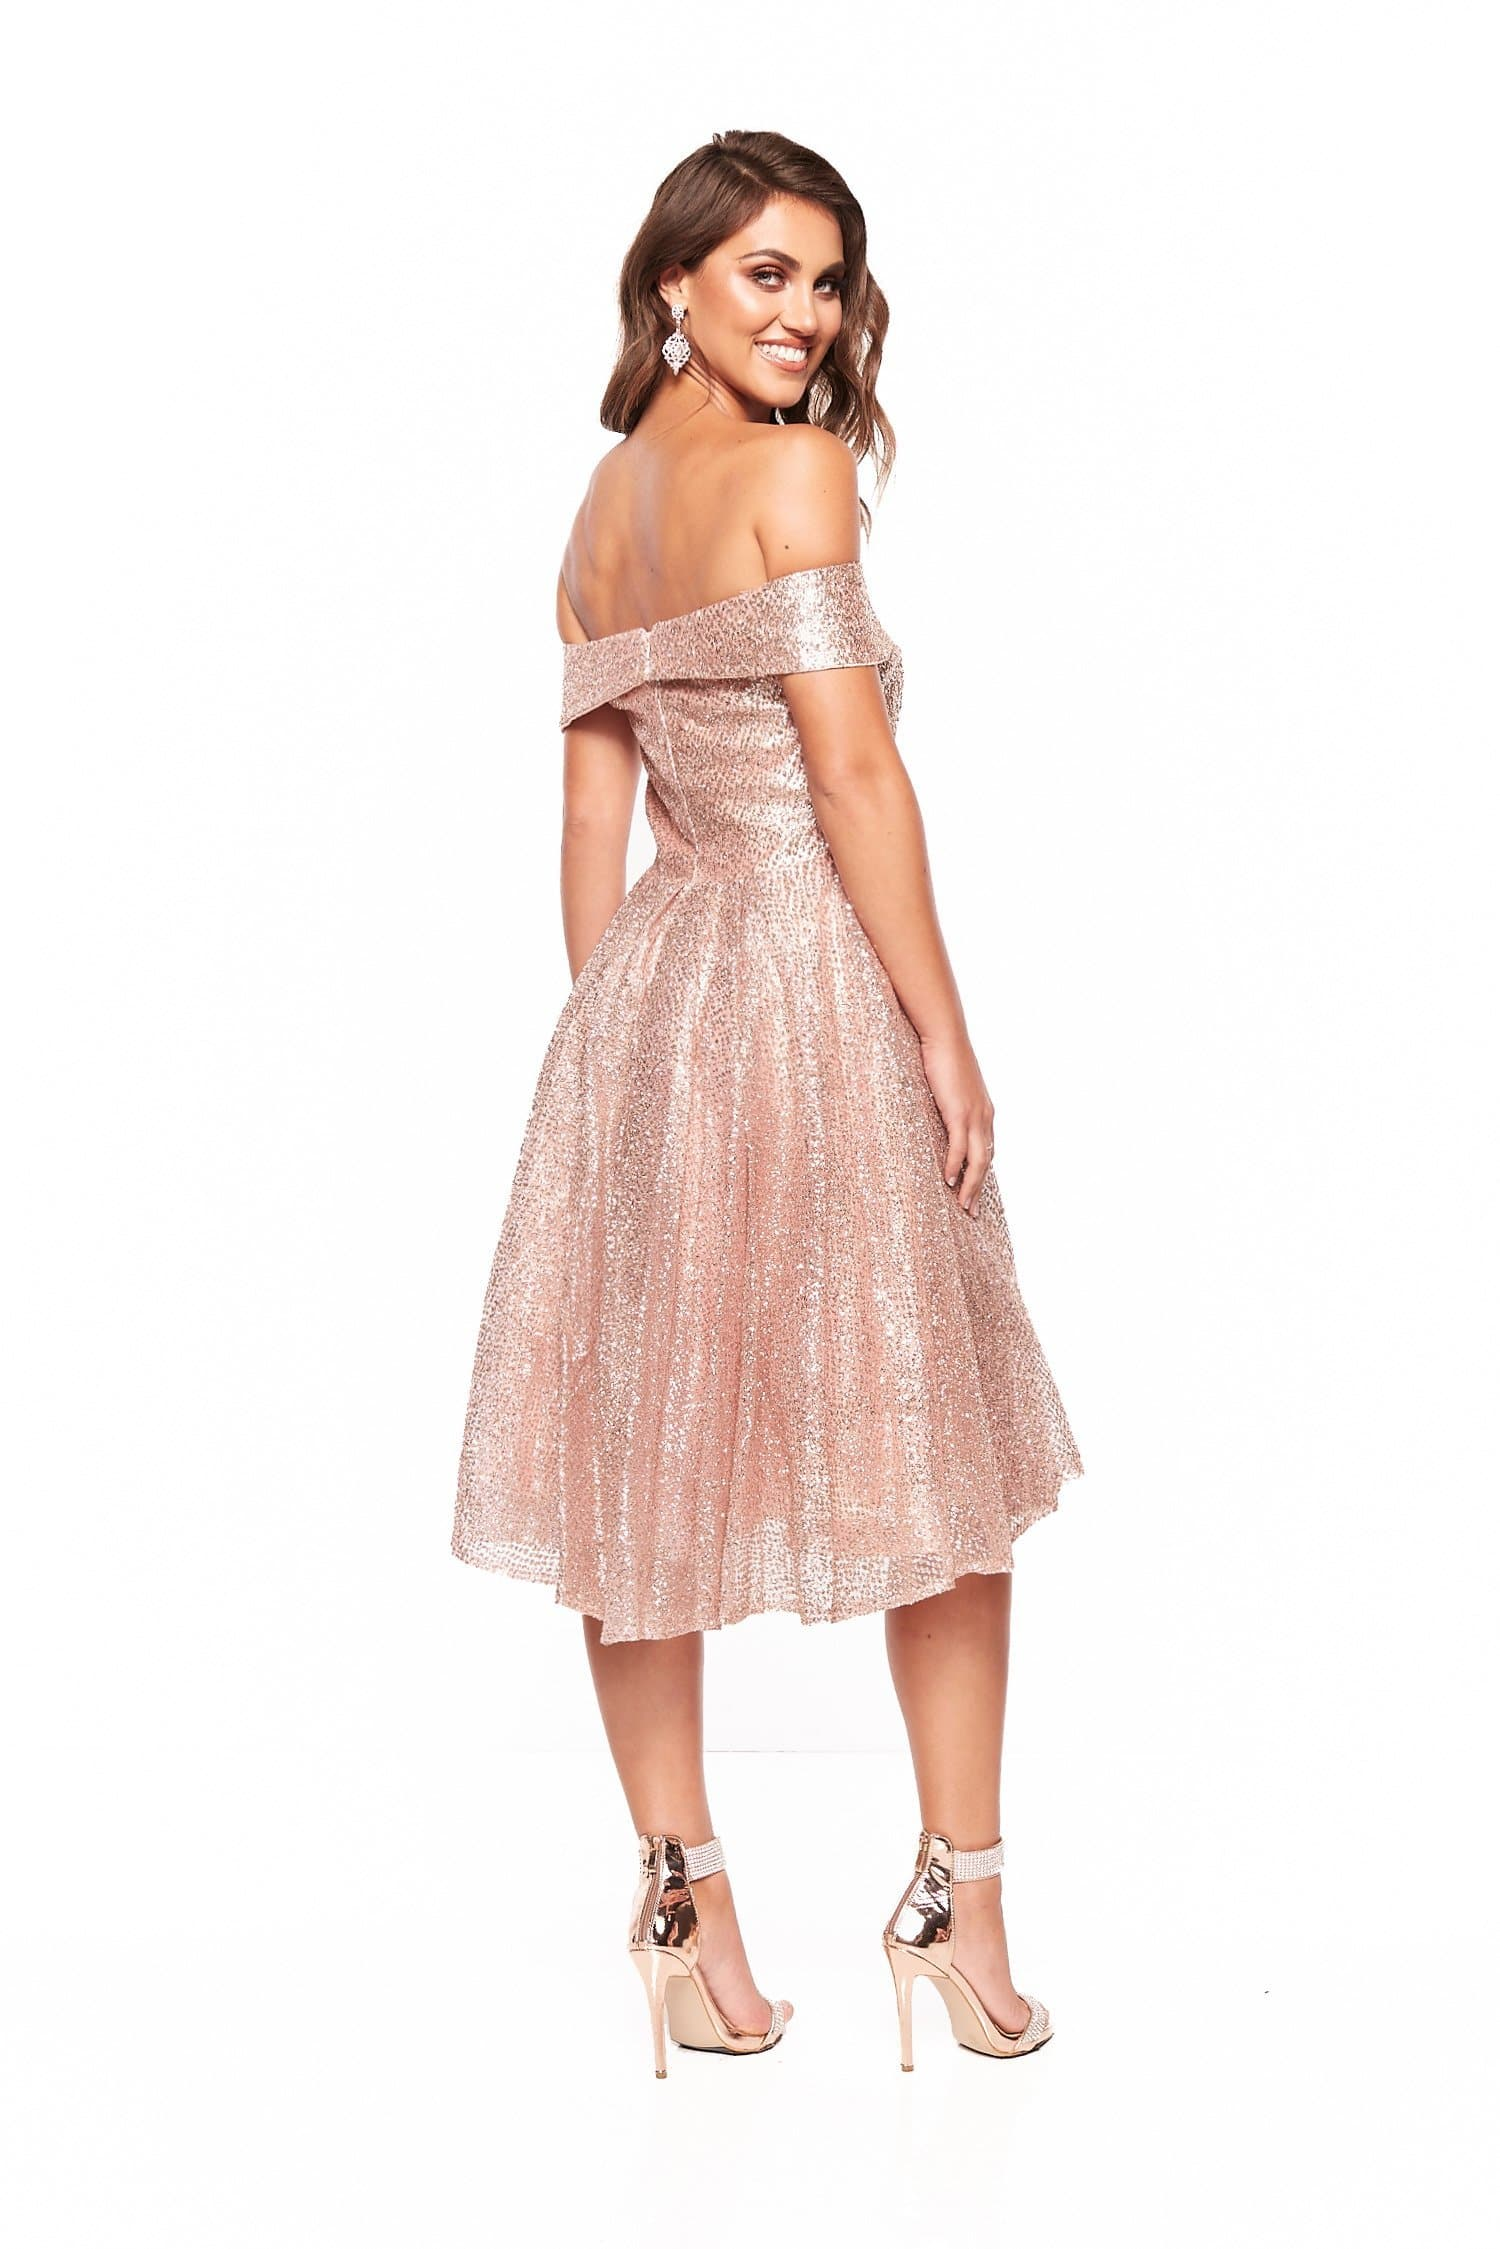 A&N Nyla Glitter Cocktail Off Shoulder Midi Dress - Rose Gold